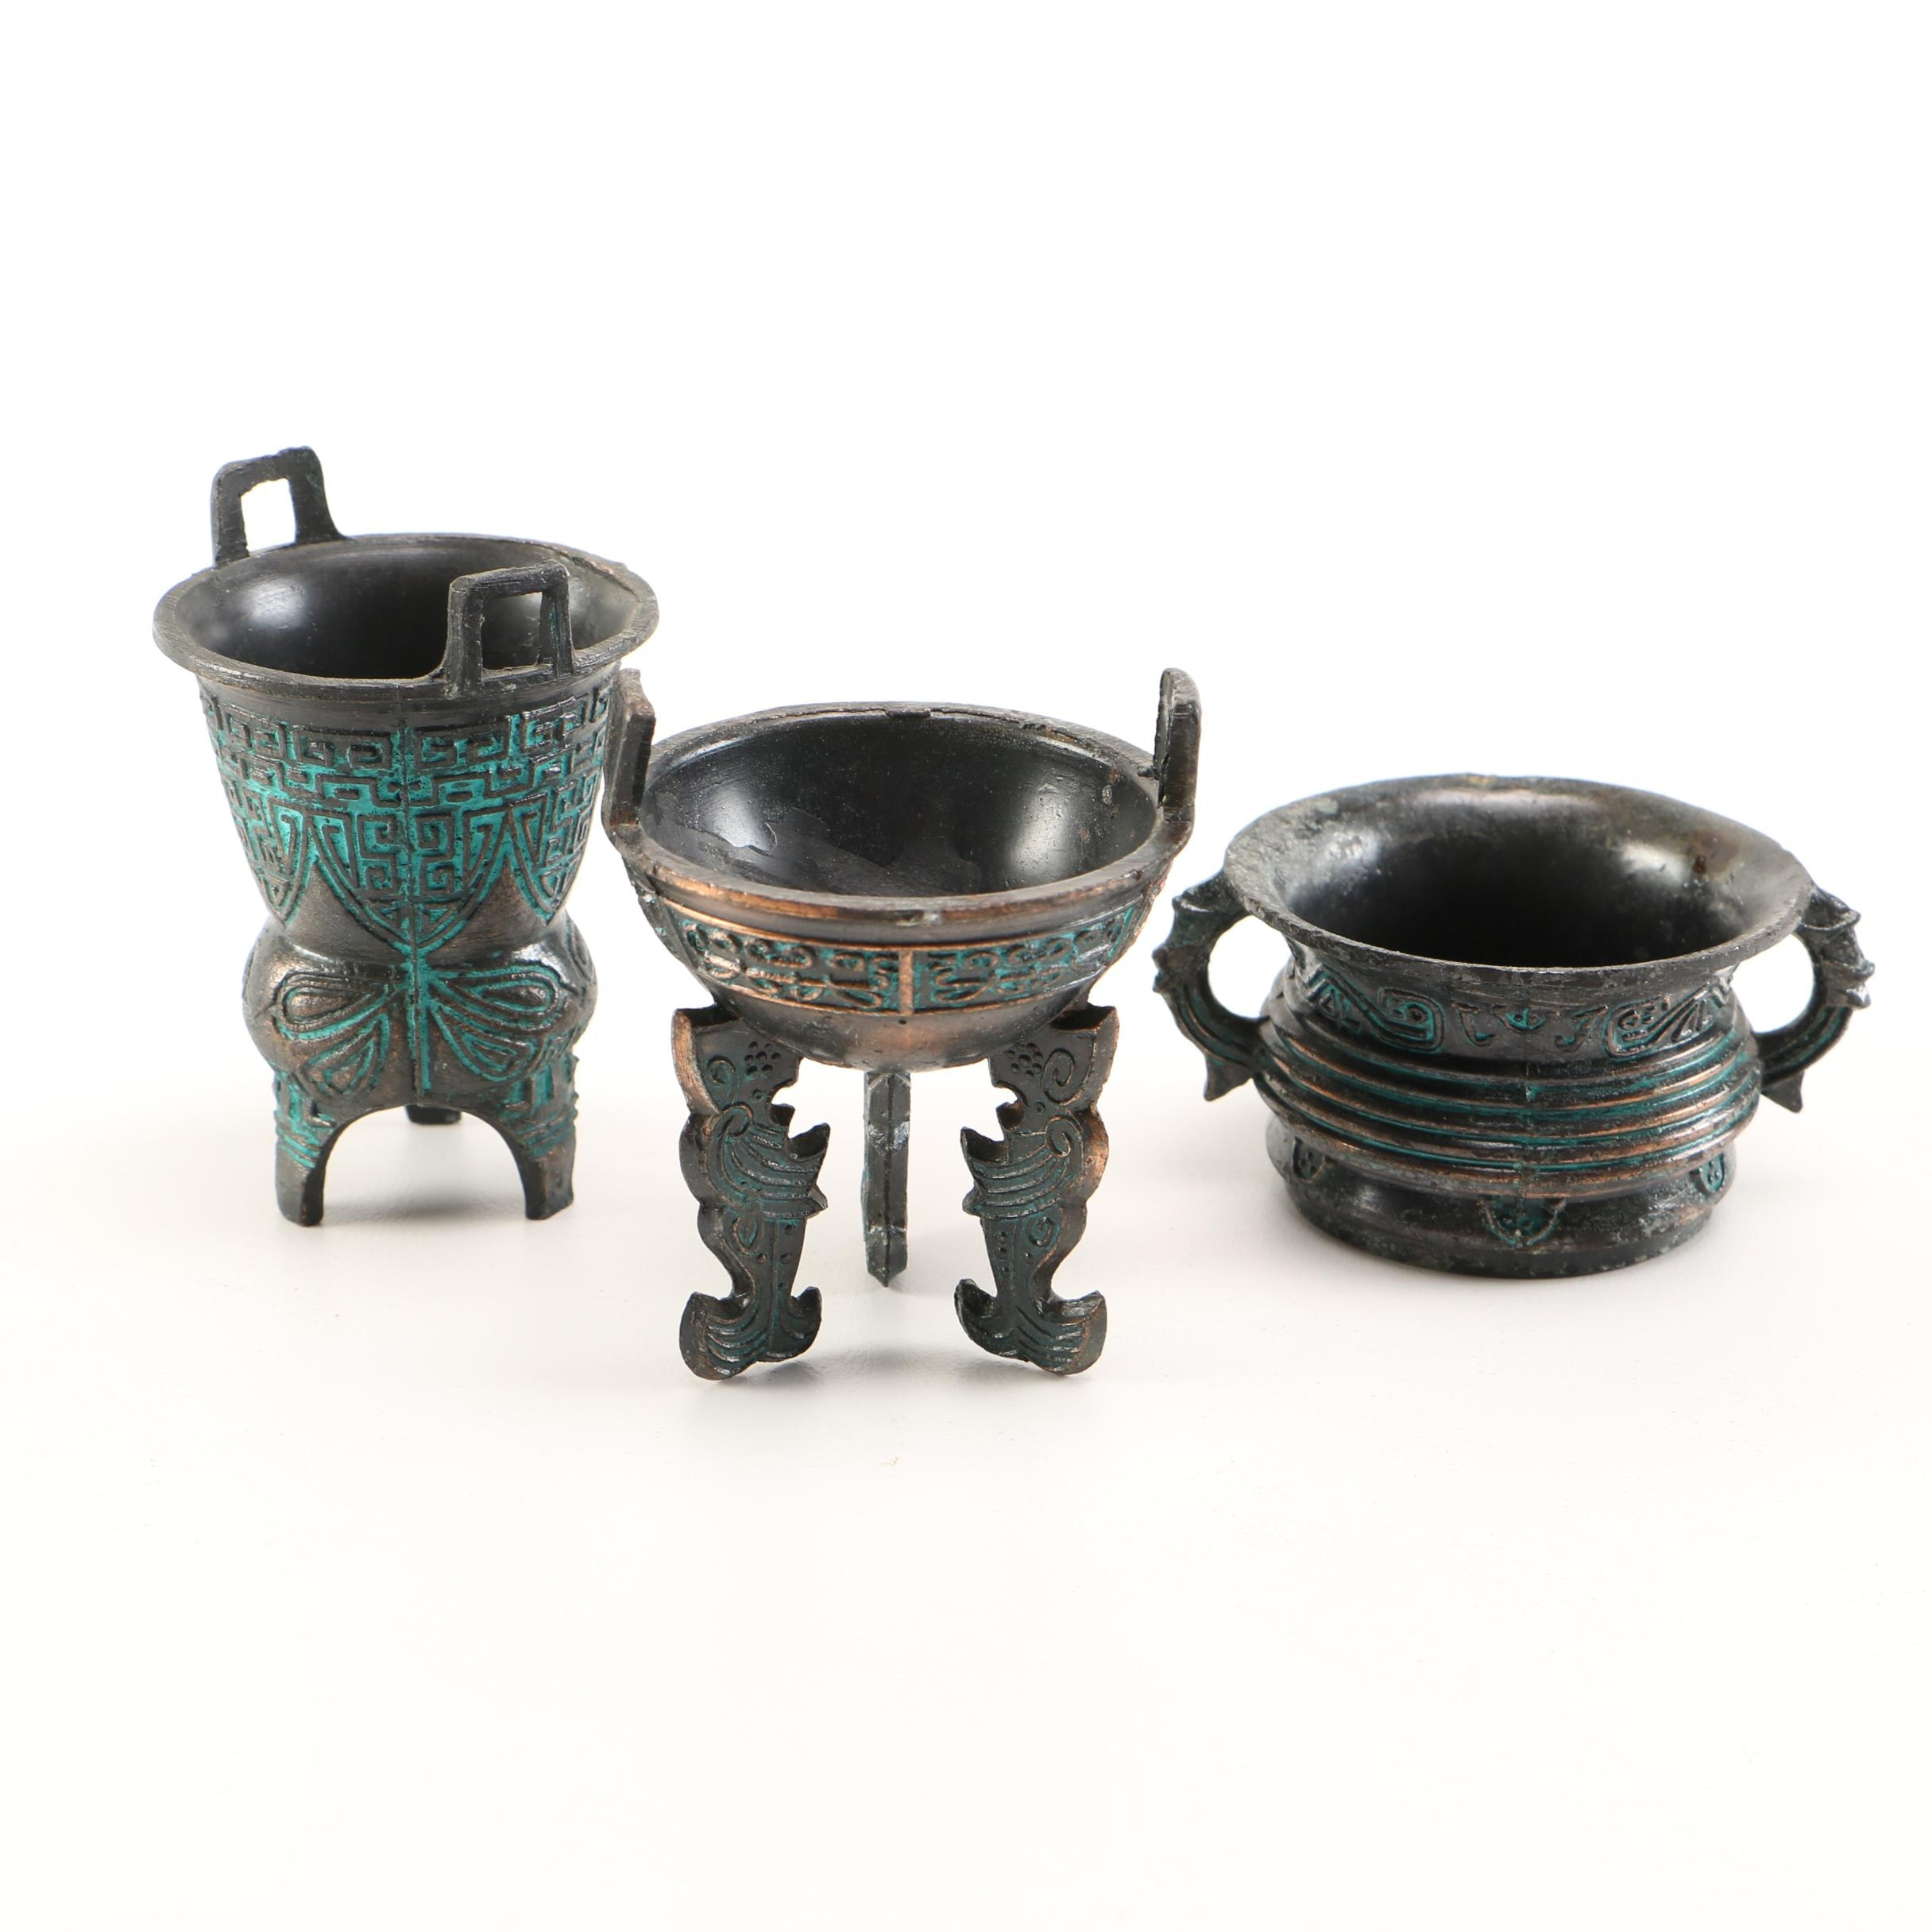 East Asian Inspired Brass Containers